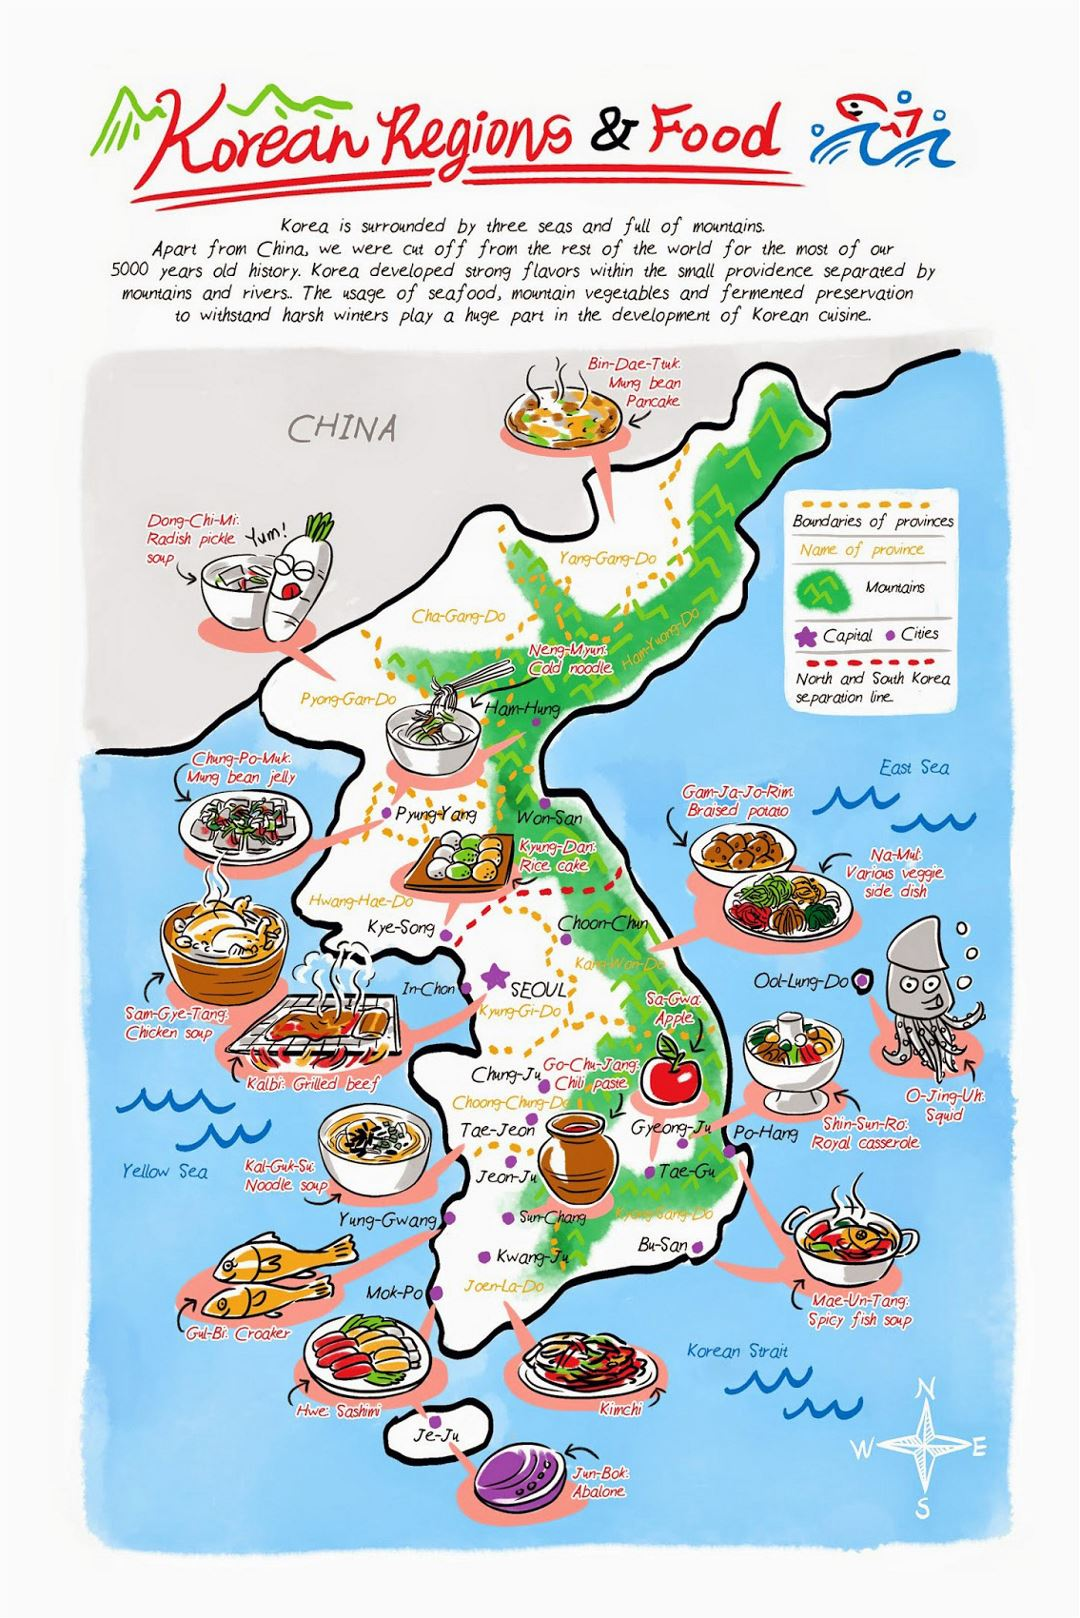 Detailed Korean Food Regions illustrated map